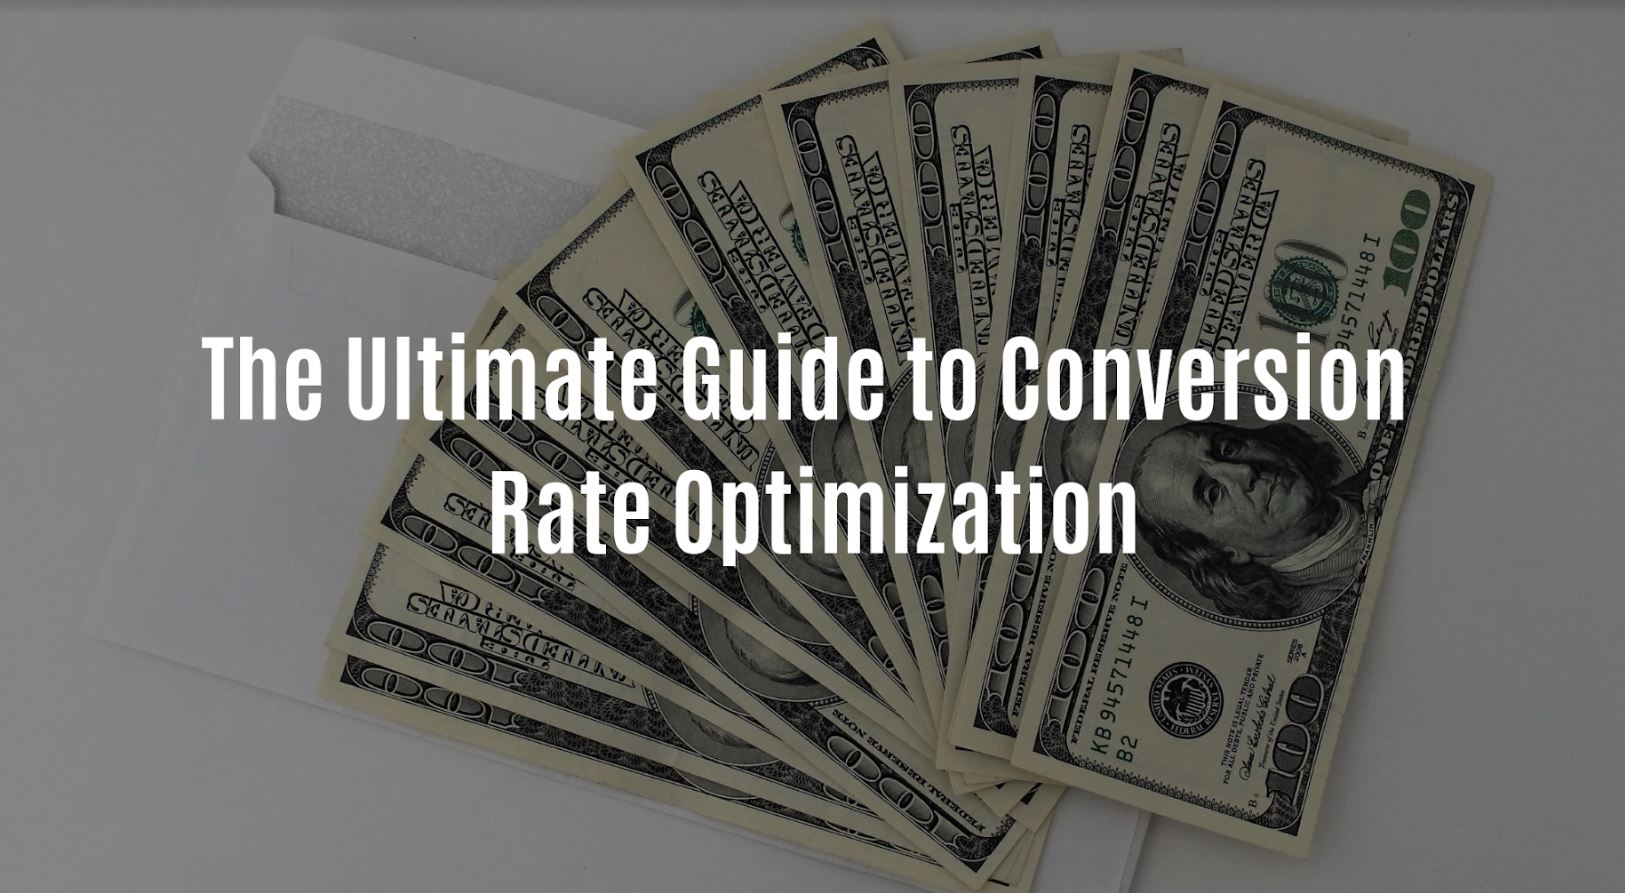 The Ultimate Guide to Conversion Rate Optimization.JPG